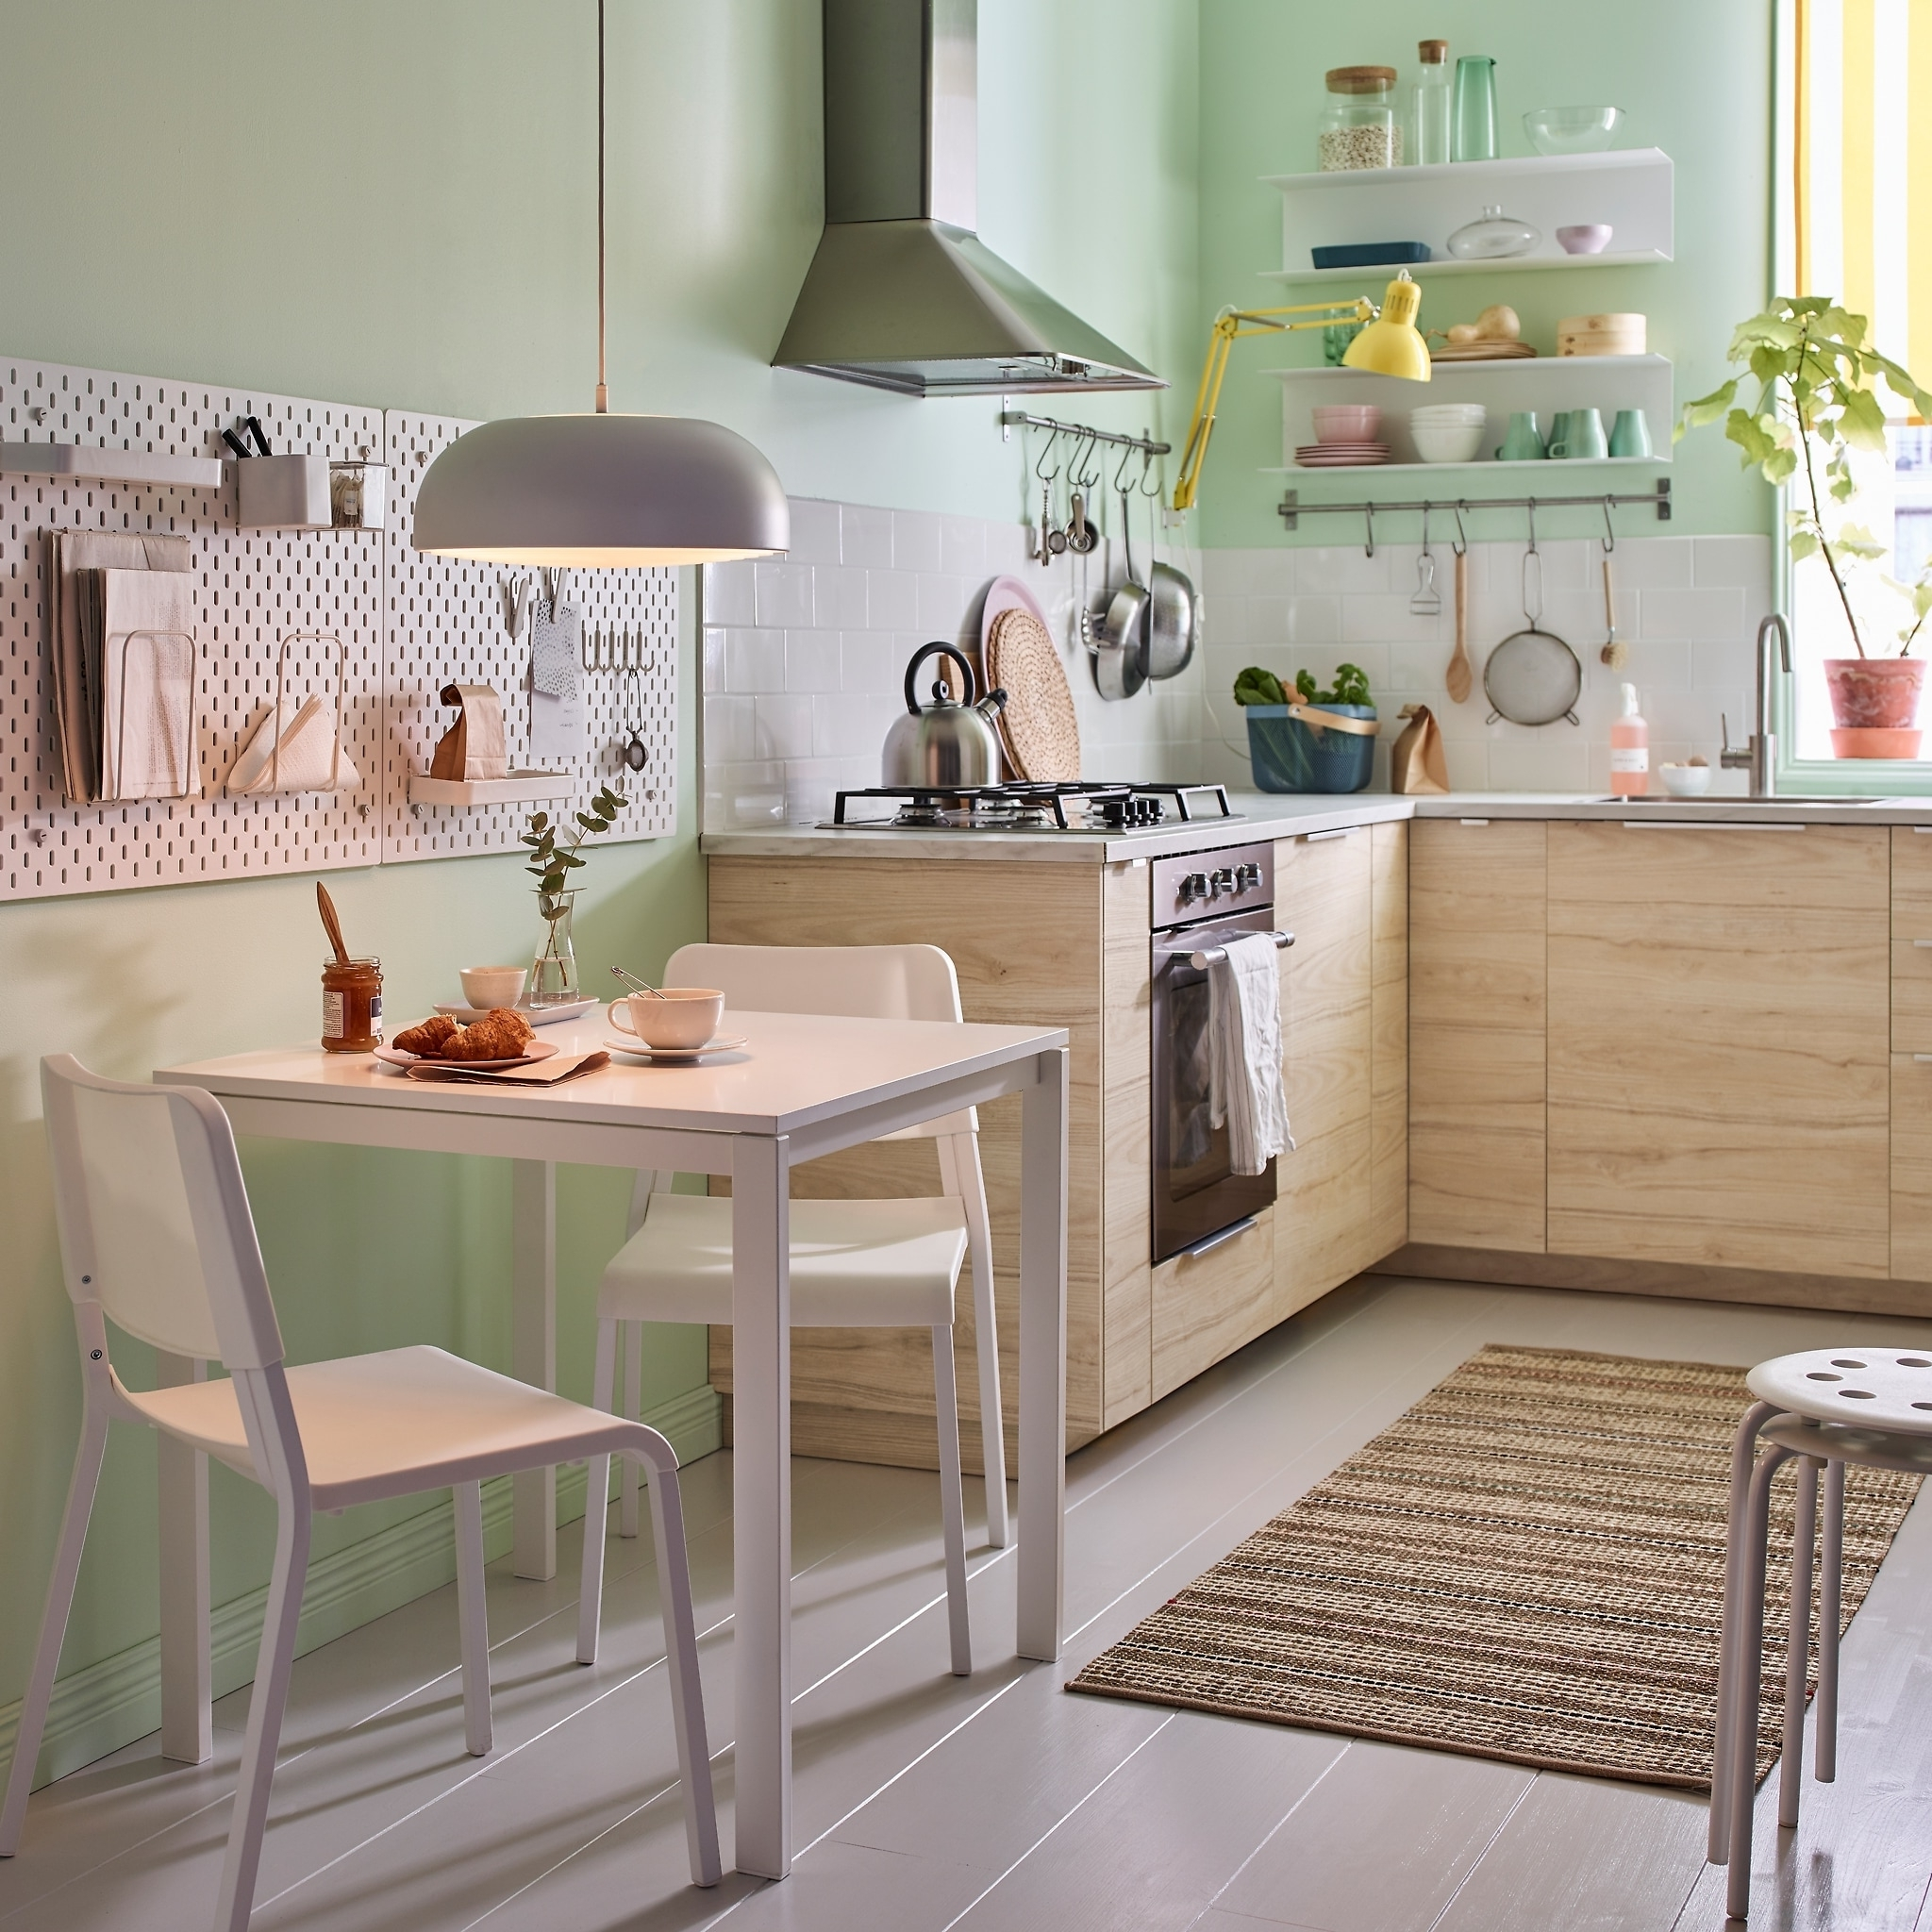 Small White Dining Tables Pertaining To Latest Dining Room Furniture & Ideas (View 20 of 25)